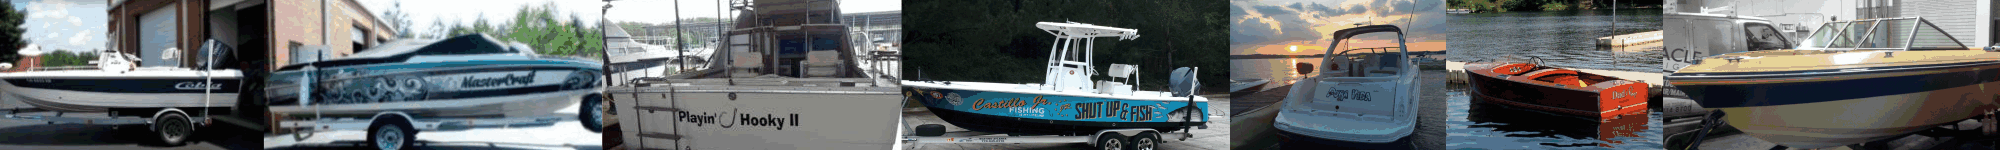 Boat Graphics | Pinnacle Custom Signs